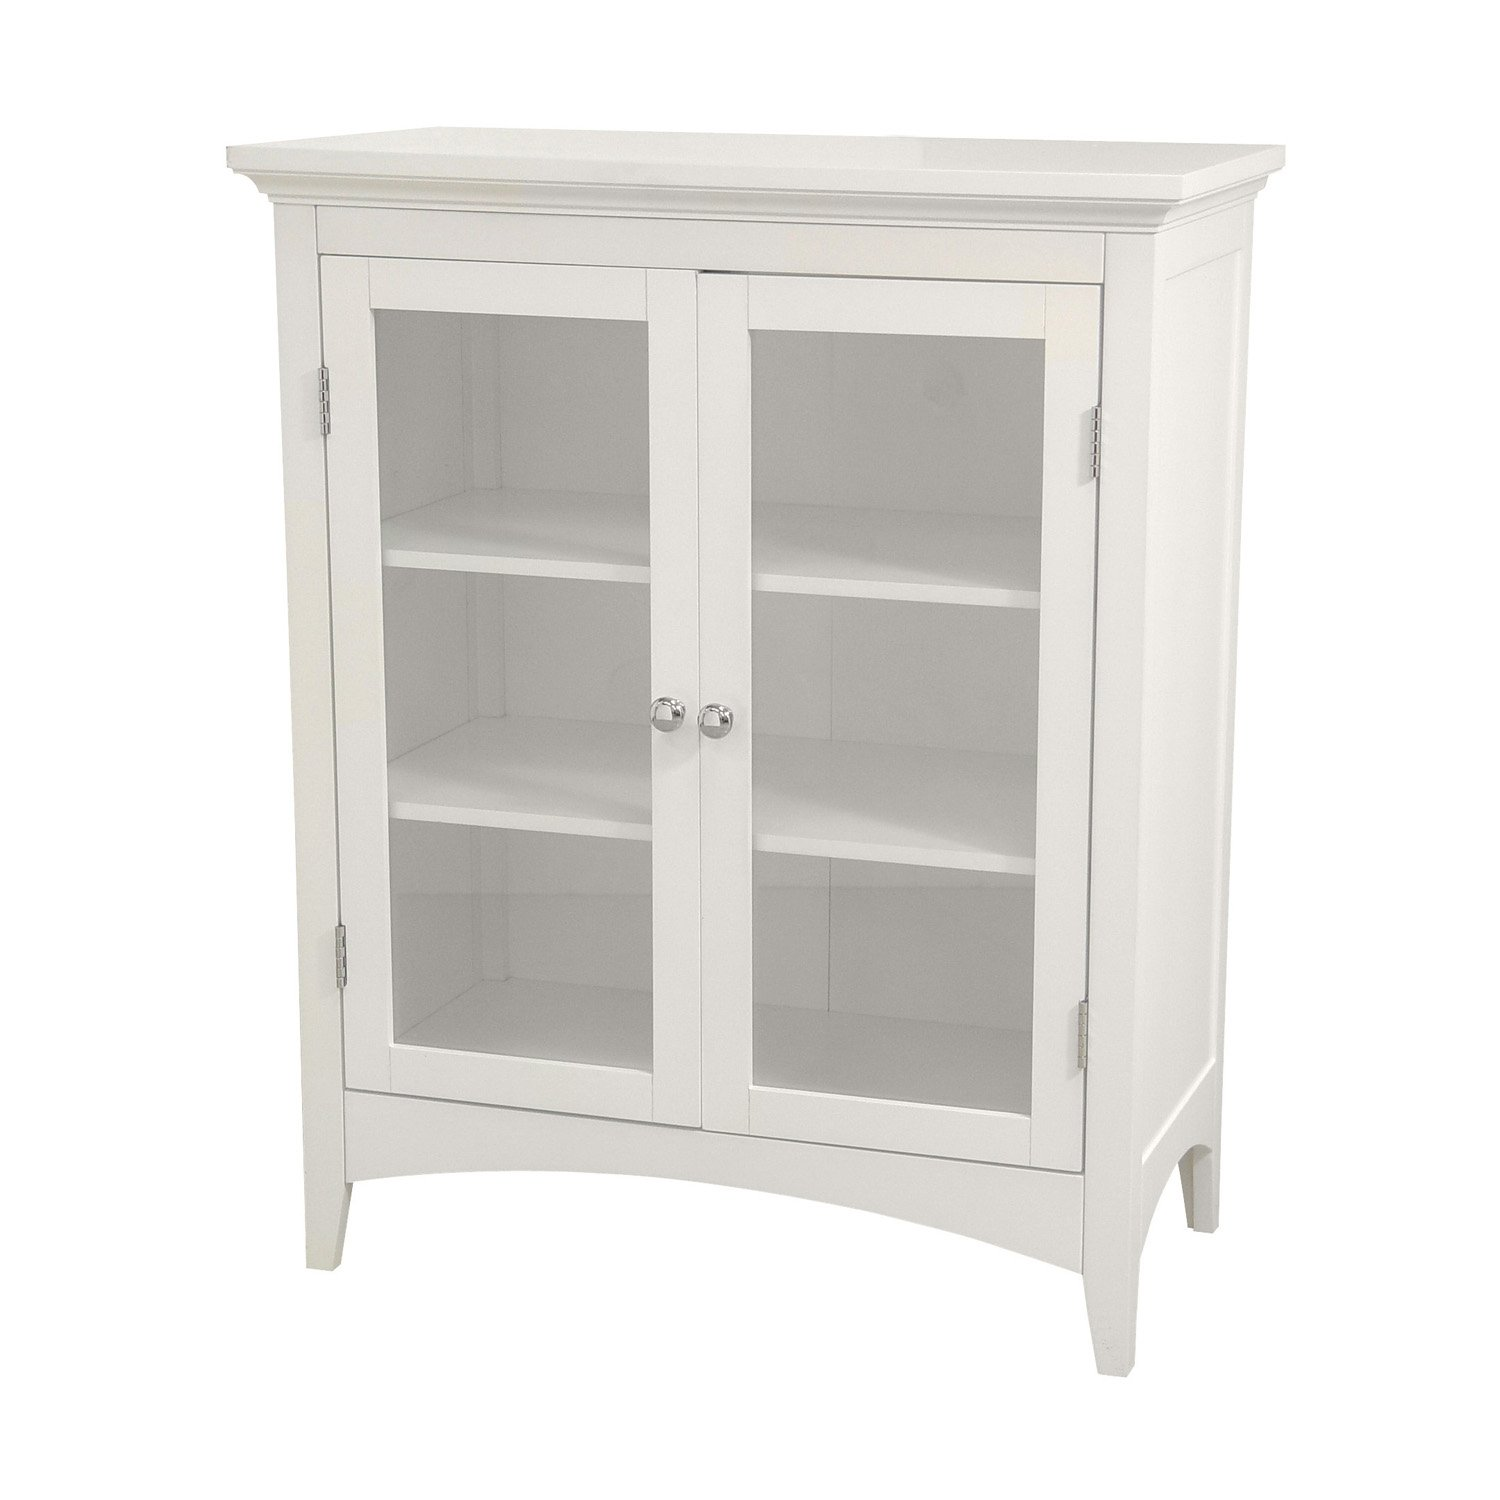 Elegant Home Fashions Madison Collection Shelved Double-Door Floor Cabinet, White by Elegant Home Fashions (Image #3)